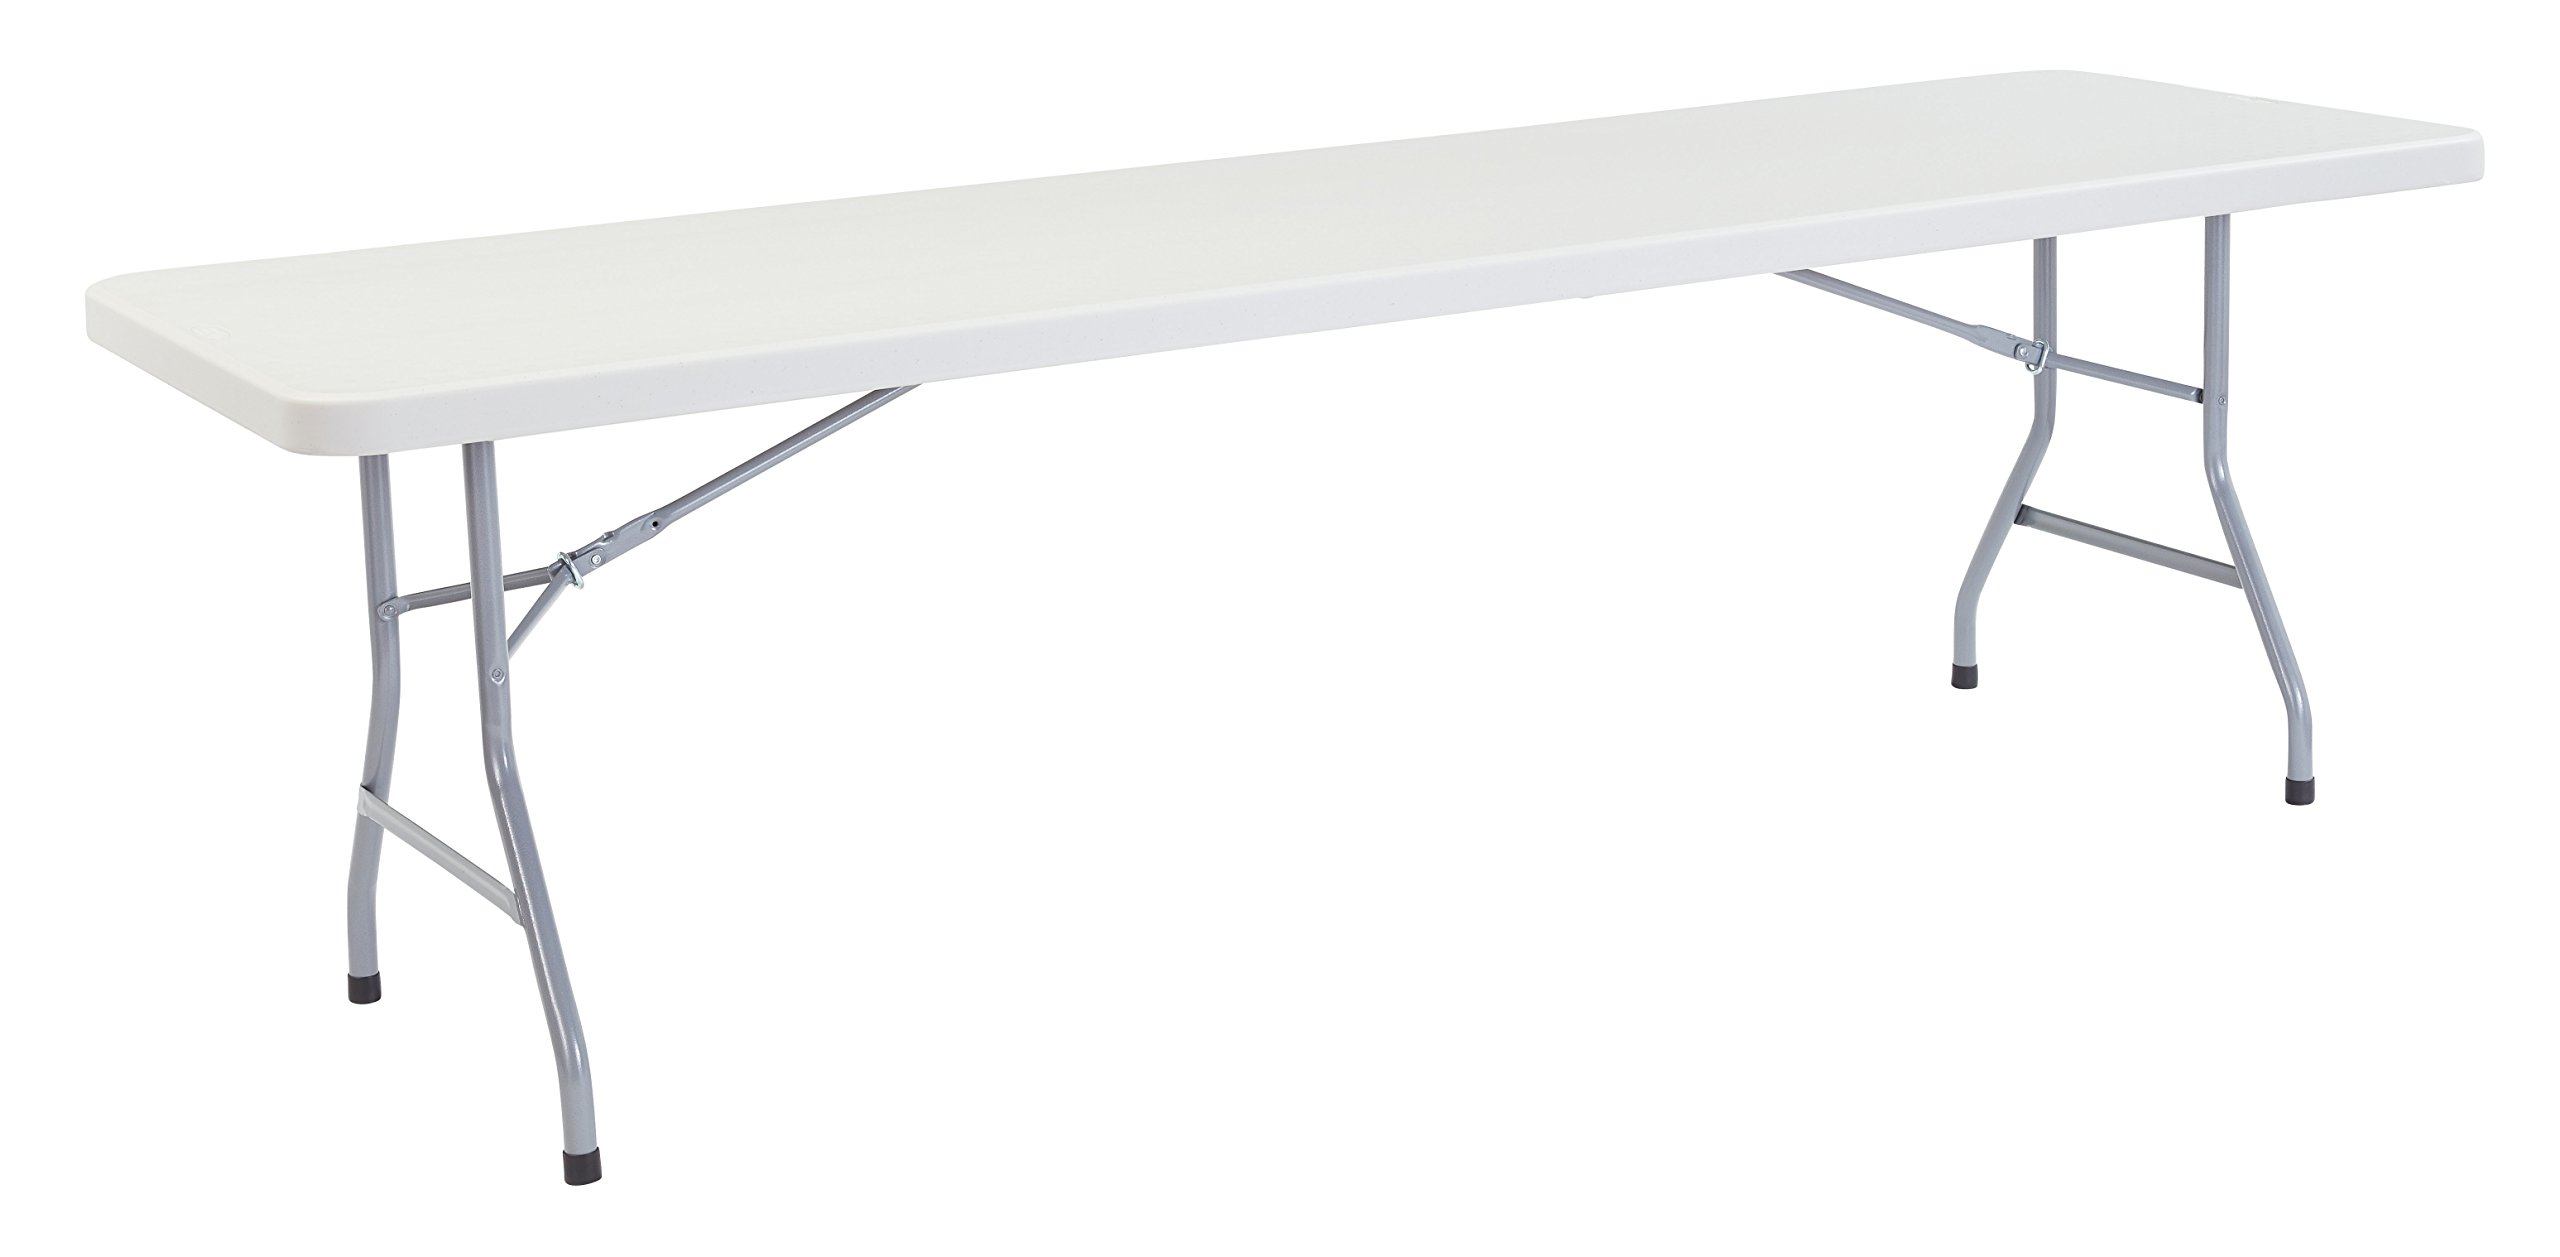 National Public Seating BT3000 Series Steel Frame Rectangular Blow Molded Plastic Top Folding Table, 800 lbs Capacity, 96'' Length x 30'' Width x 29-1/2'' Height, Speckled Gray/Gray